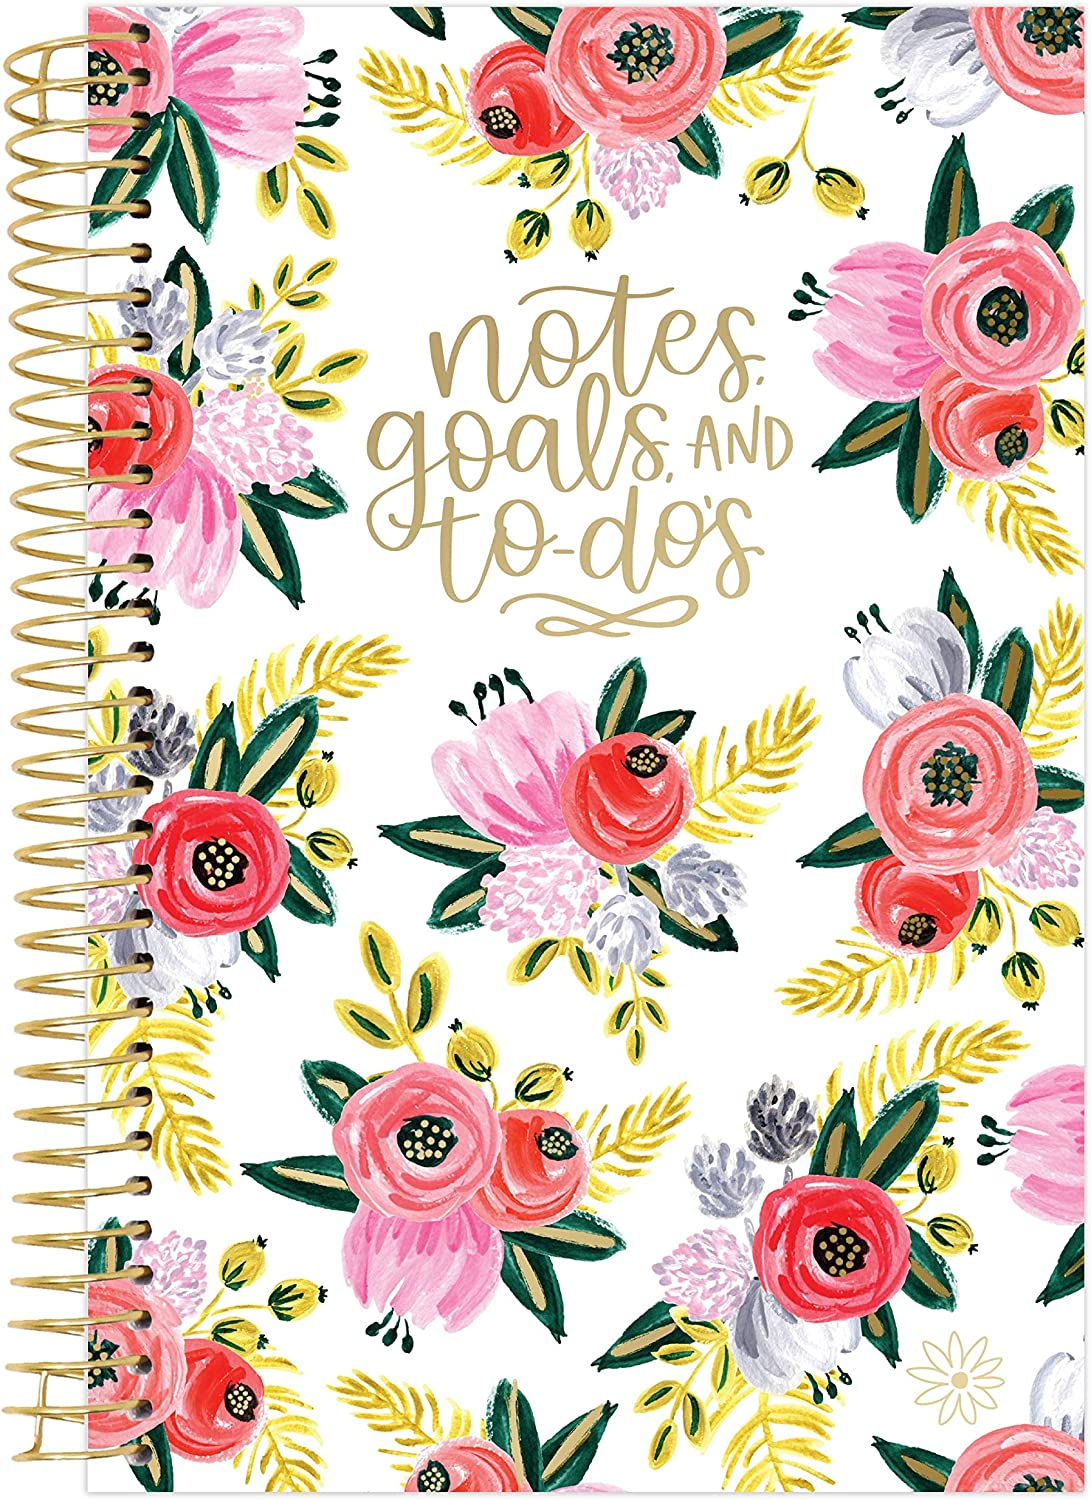 """bloom daily planners Bound to-Do List Book - UNDATED Daily Planning System Tear Off Calendar Pages - 6"""" x 8.25"""" - Rustic Blooms"""